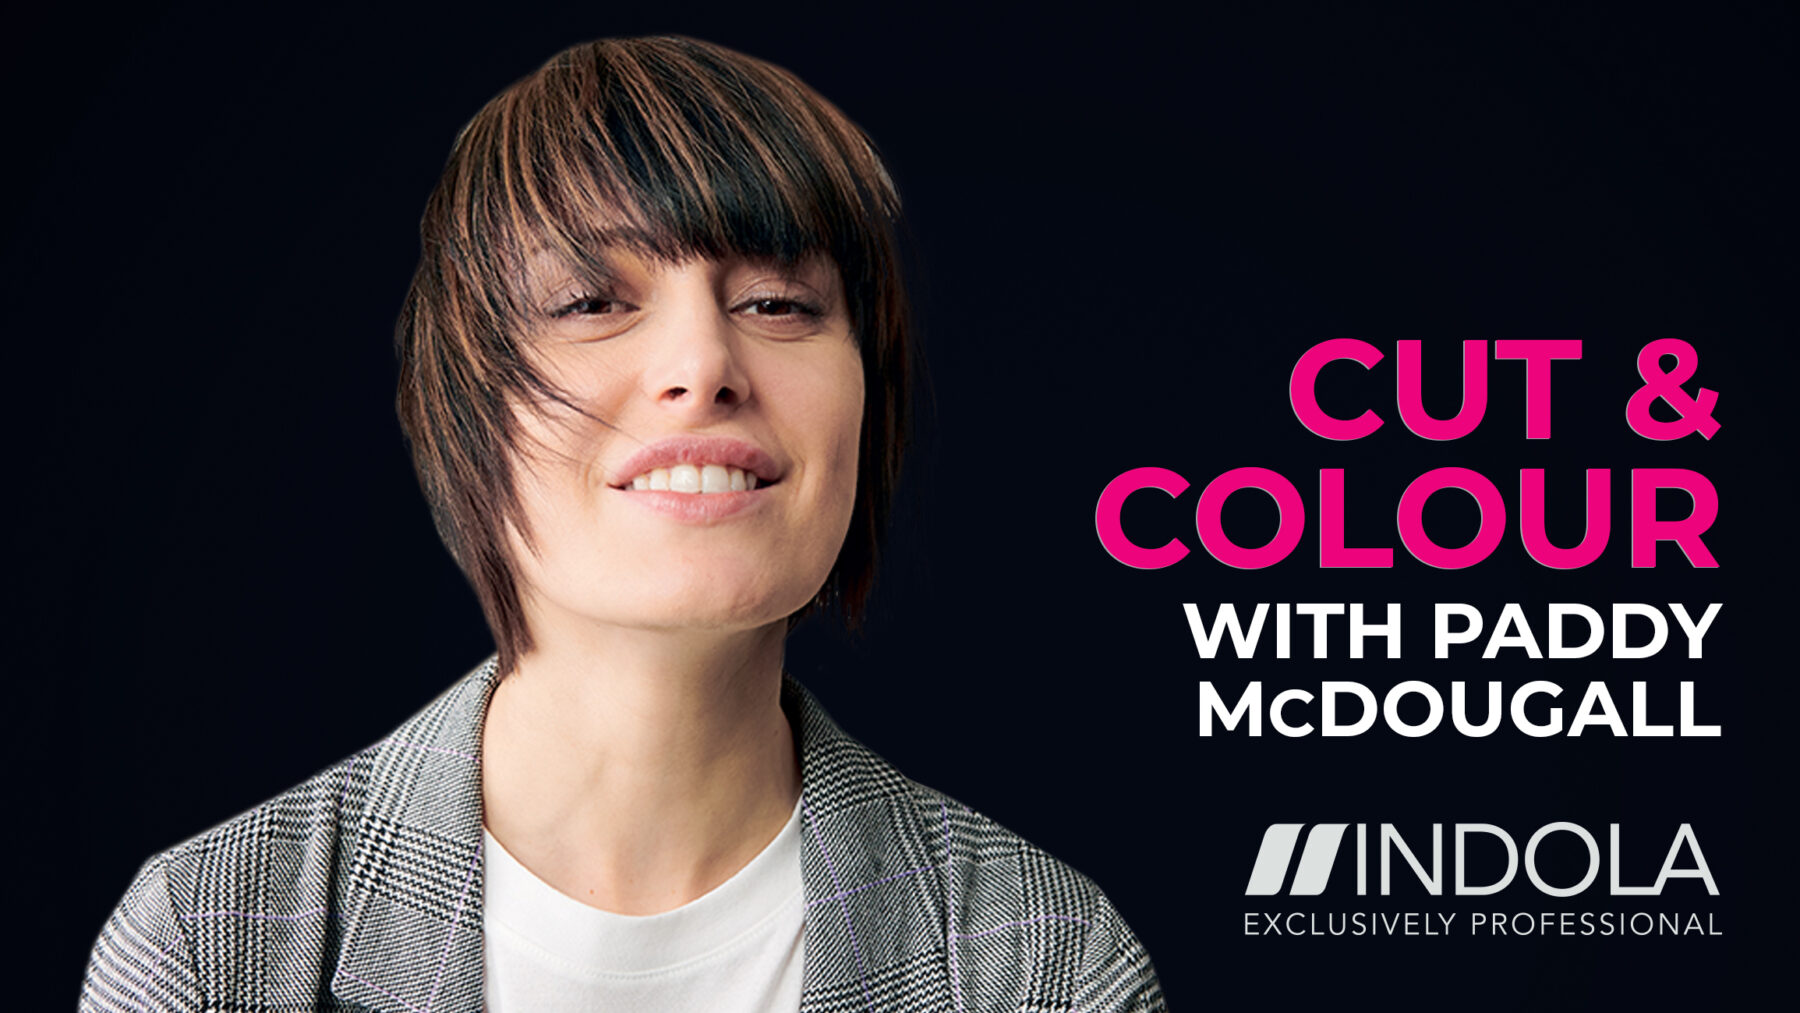 Indola Cut & Colour with Paddy McDougall